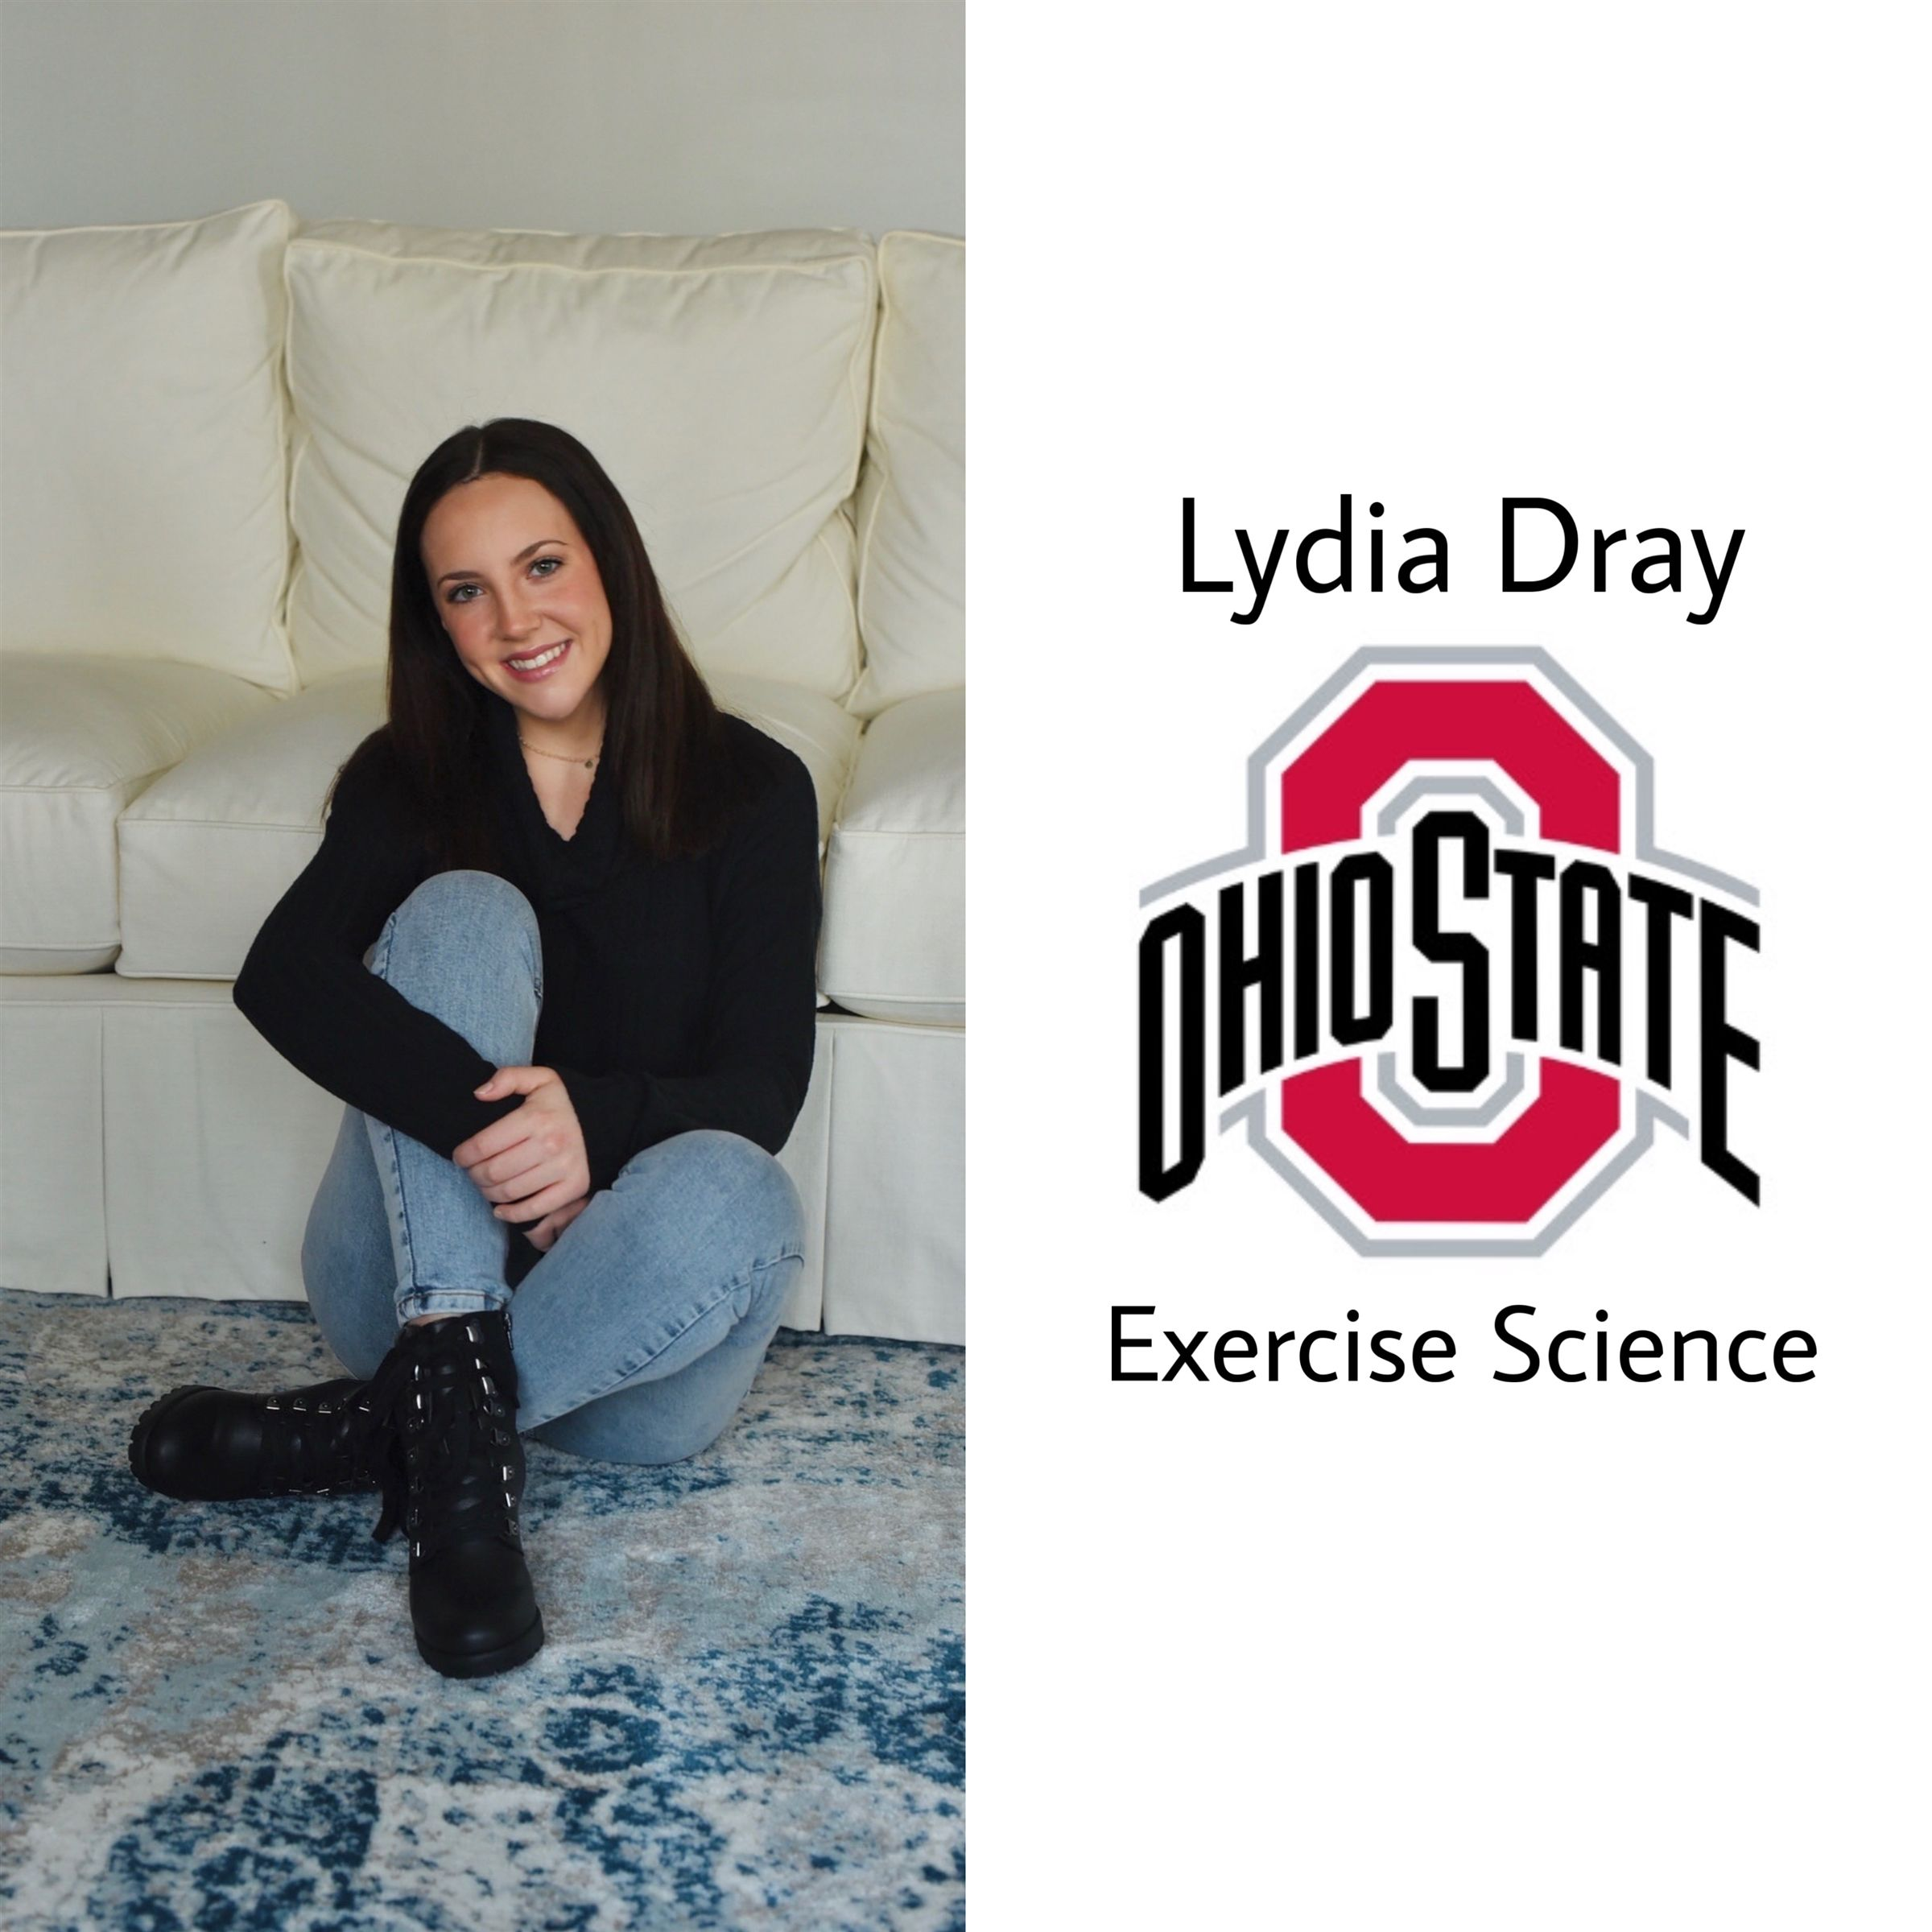 GO BUCKS!! Congrats Lydia on t'OSU! She will be in C-bus next year majoring in exercise science!